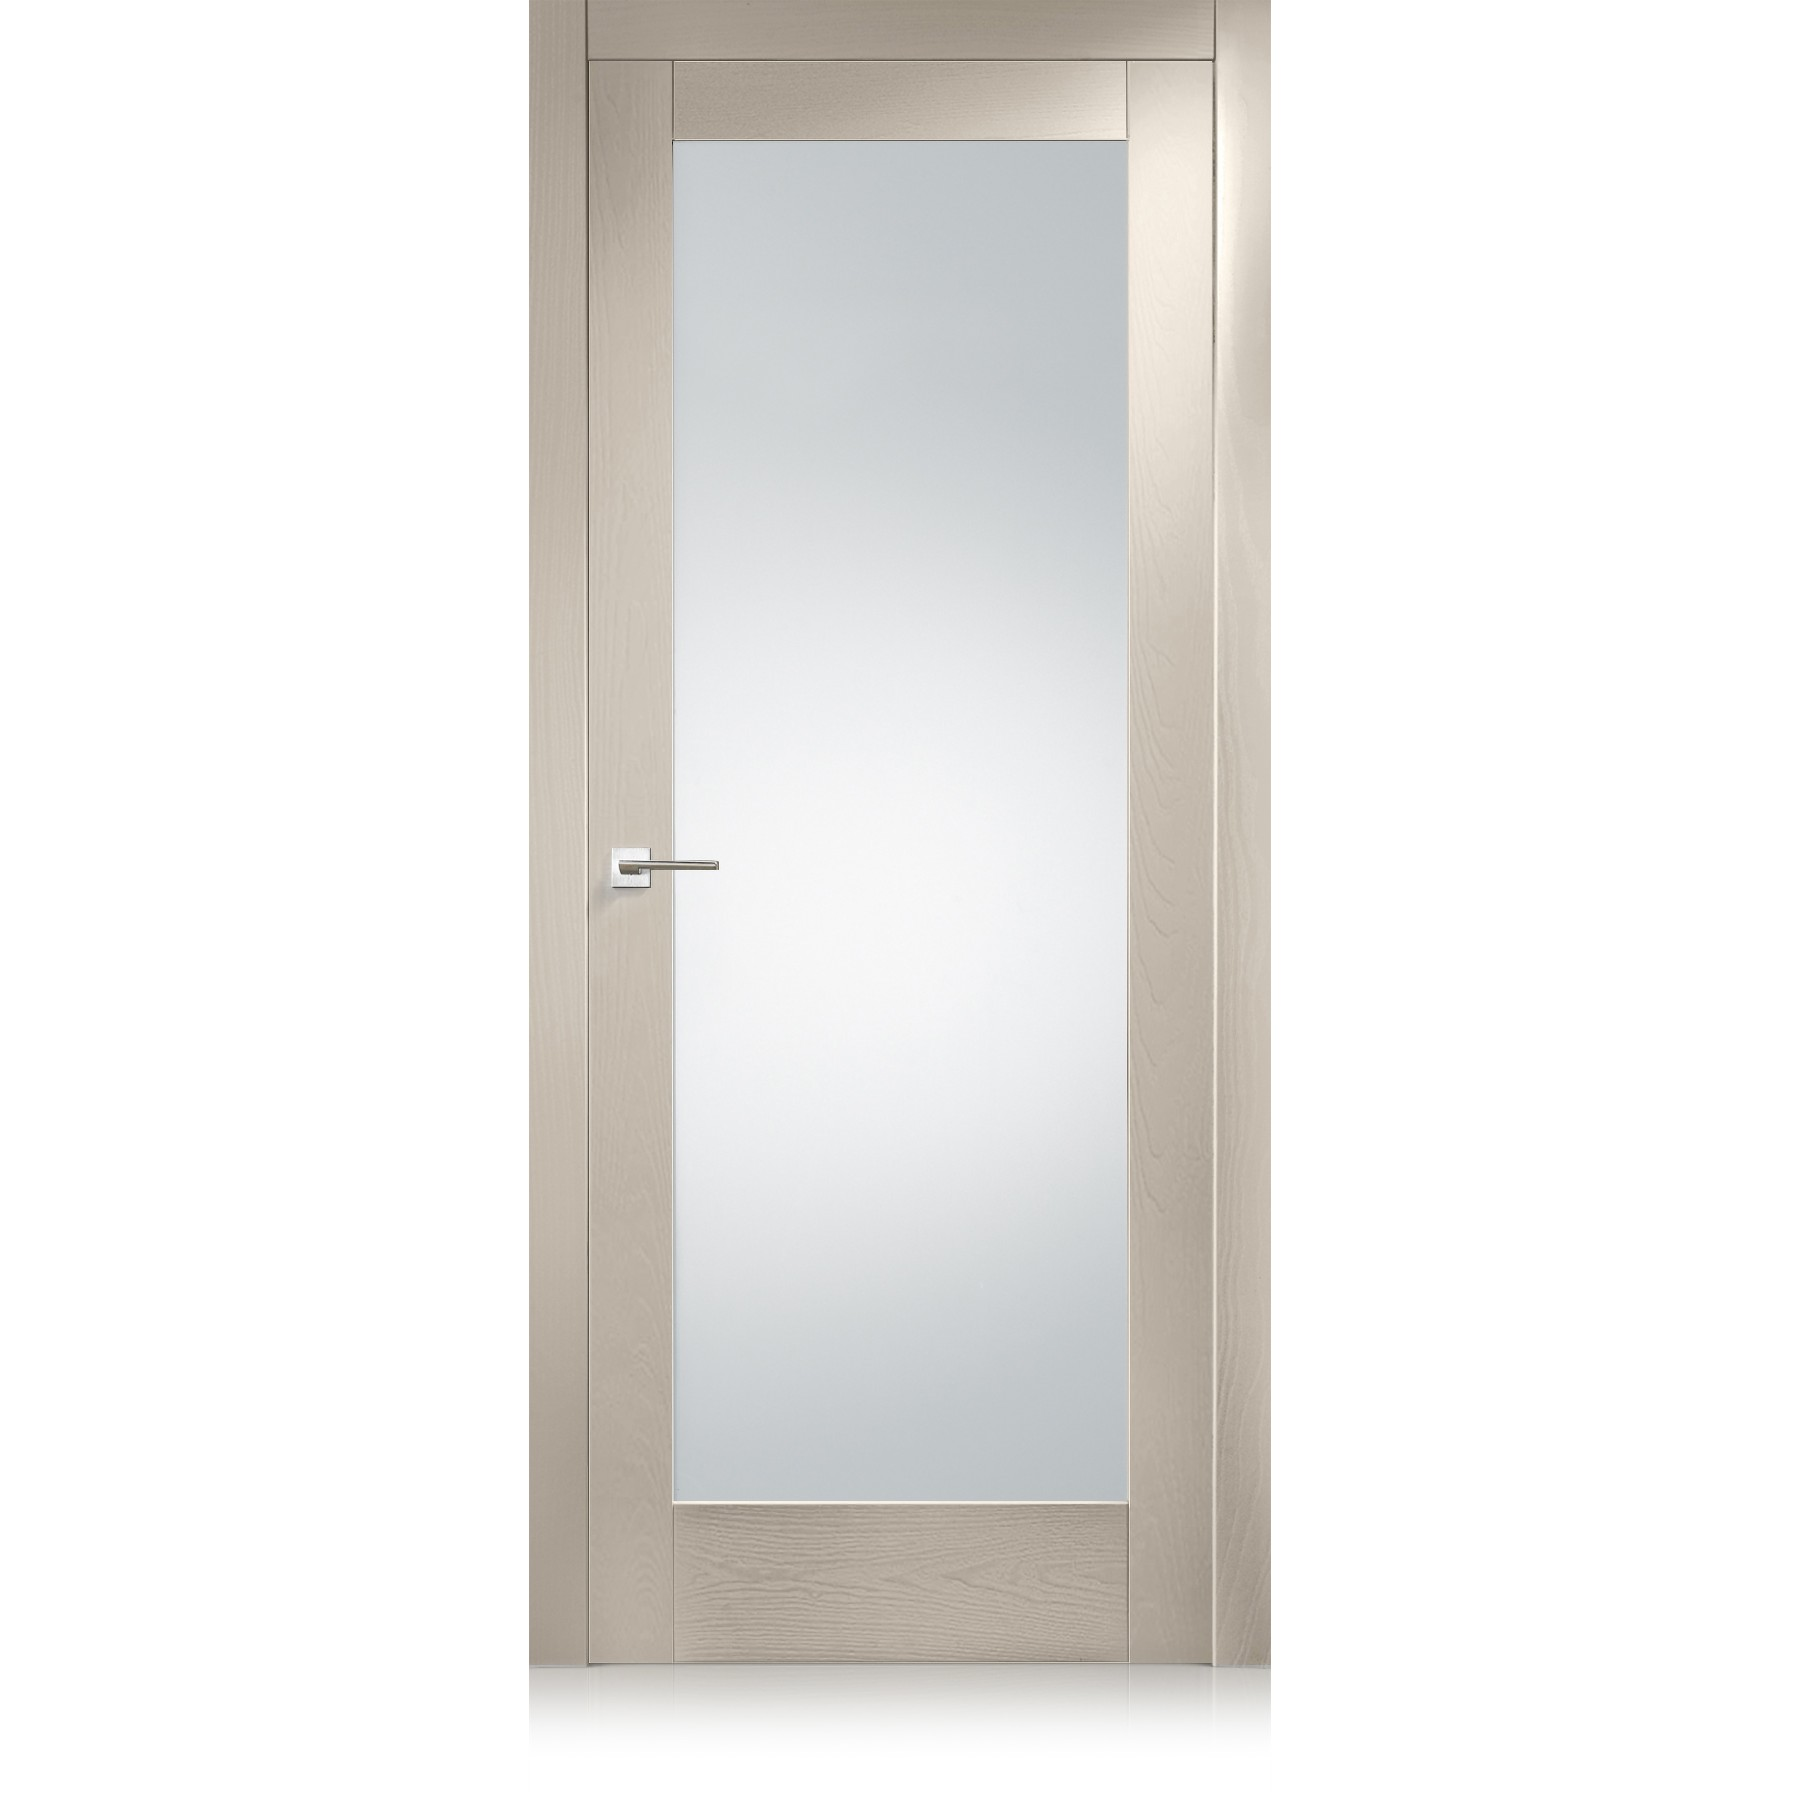 Suite / 21 Point frosted extraclear glass door